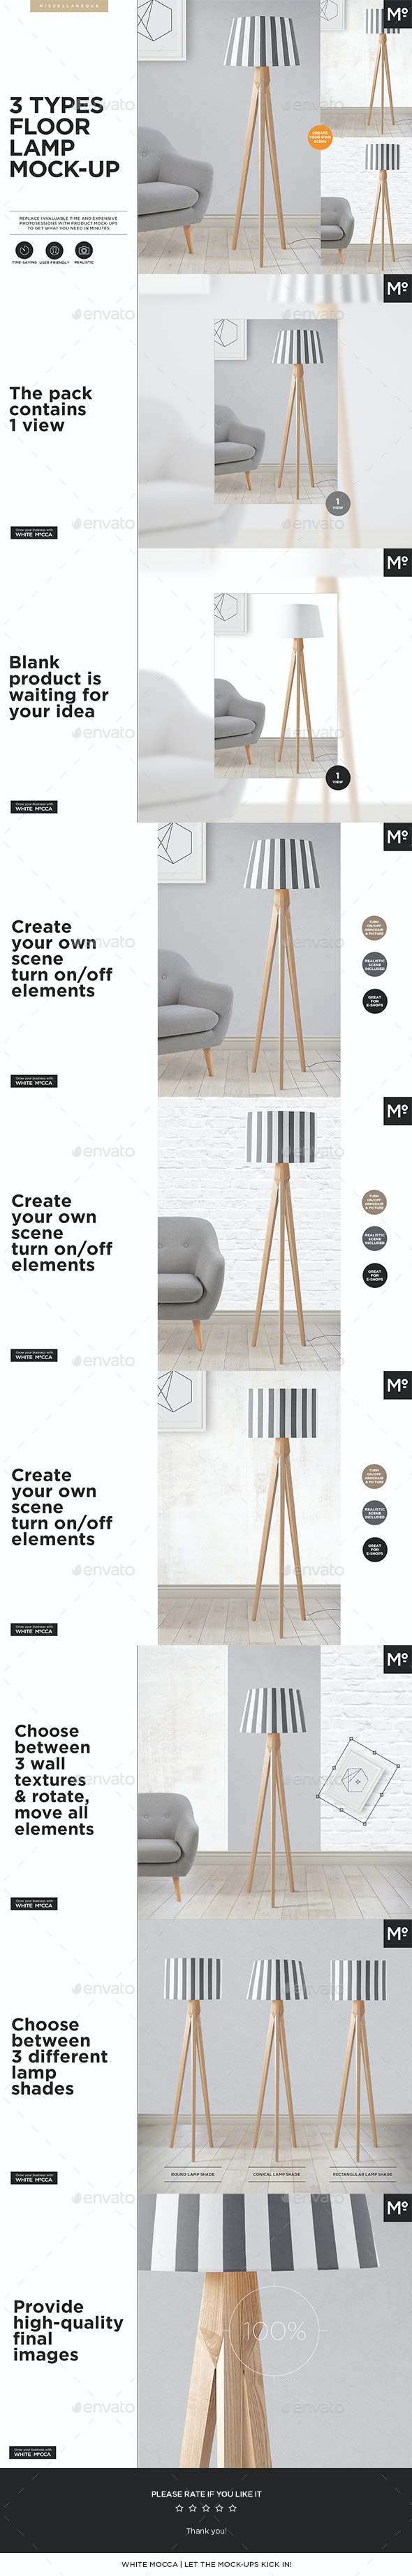 3 Types Floor Lamp Mock-up - Miscellaneous Product Mock-Ups